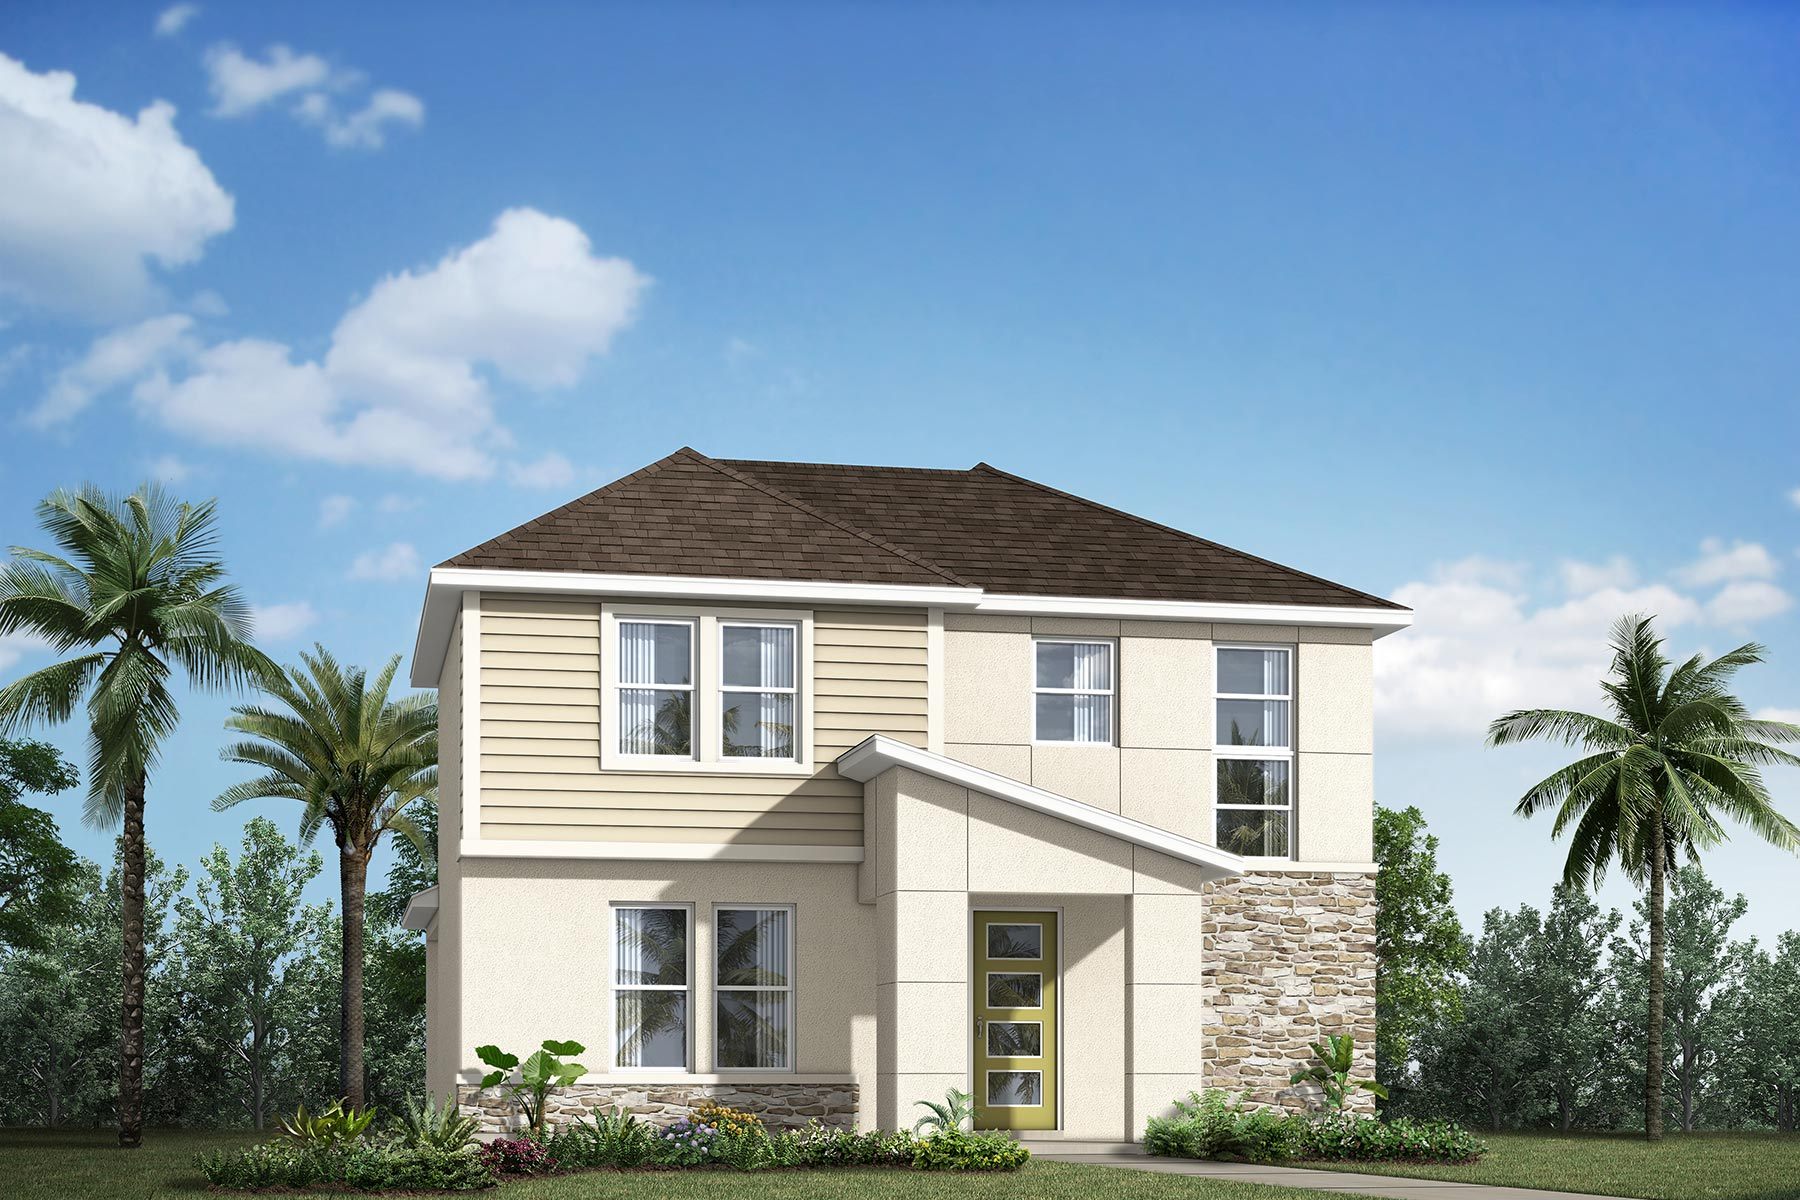 Belmont Plan Elevation Front at Meridian Parks in Orlando Florida by Mattamy Homes